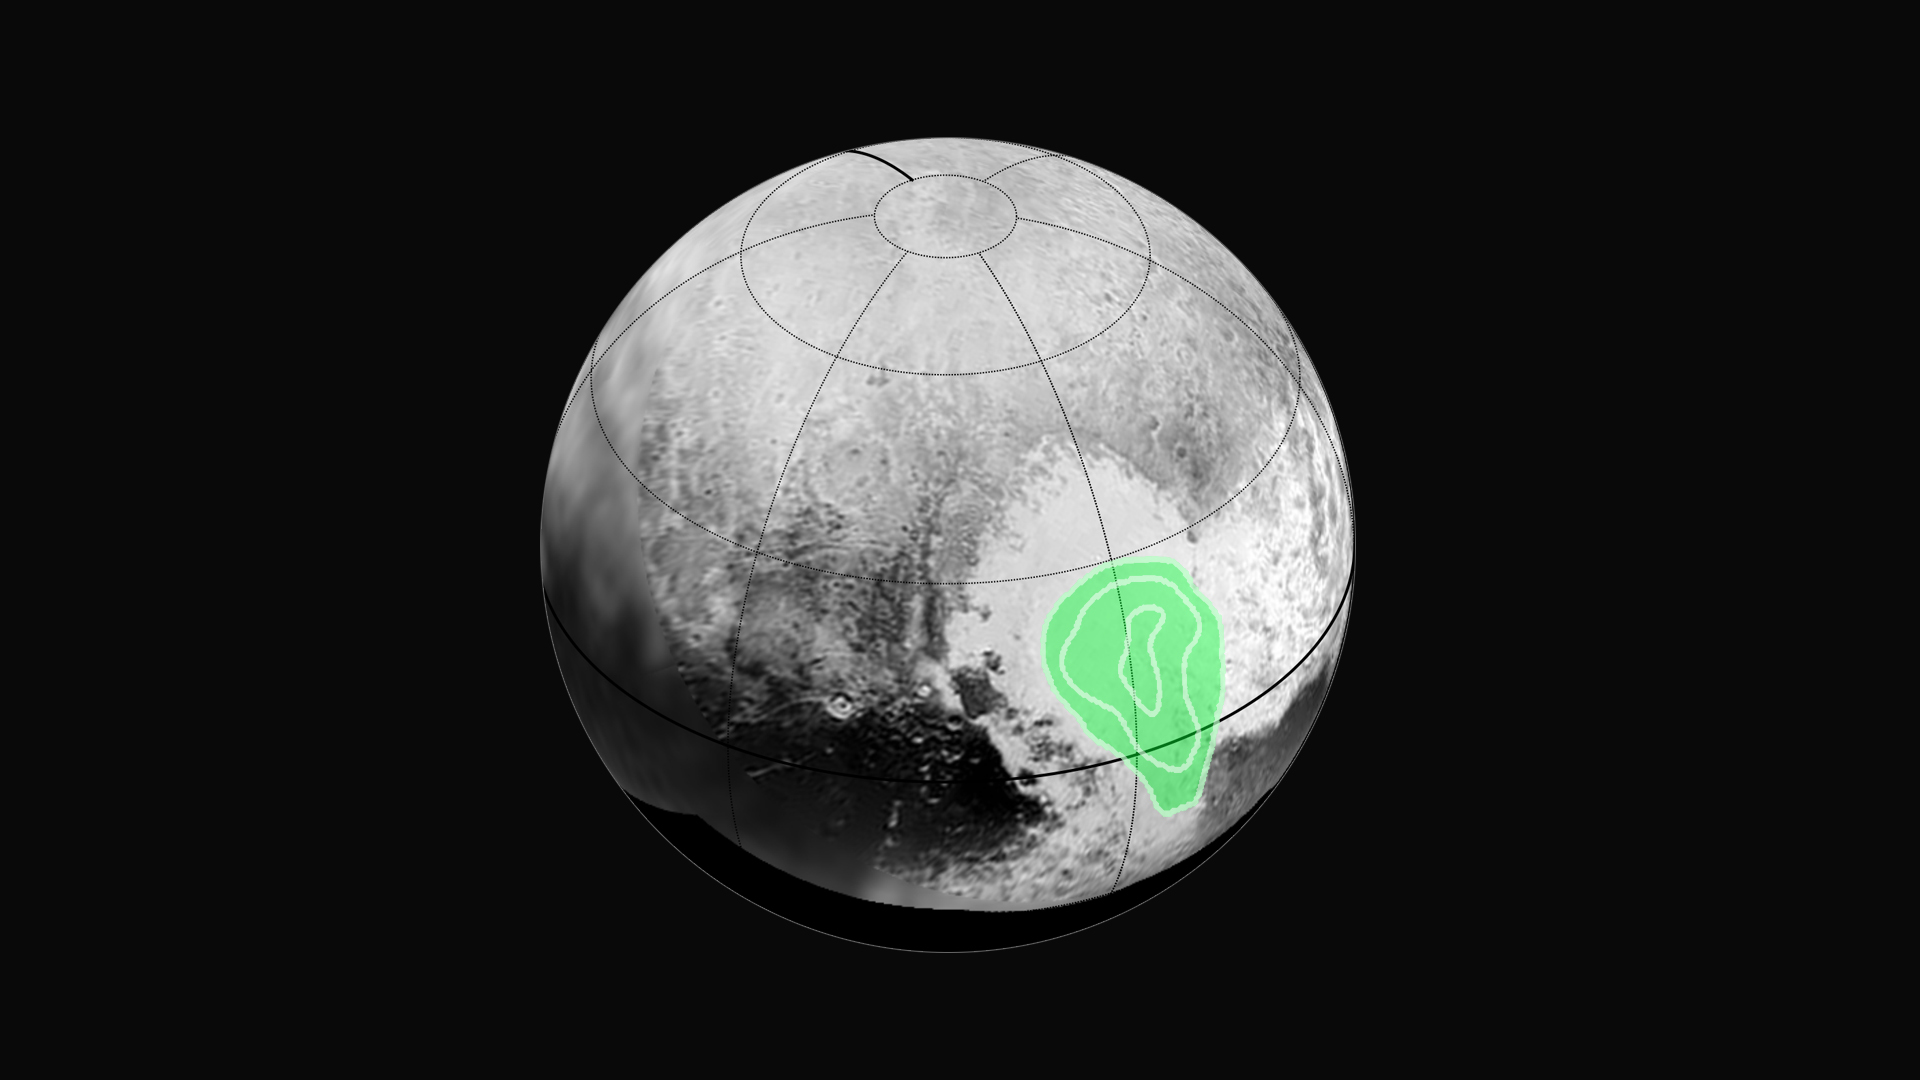 Discovery Of Pluto: Scientists Find Signs Of Potential Geysers On Pluto